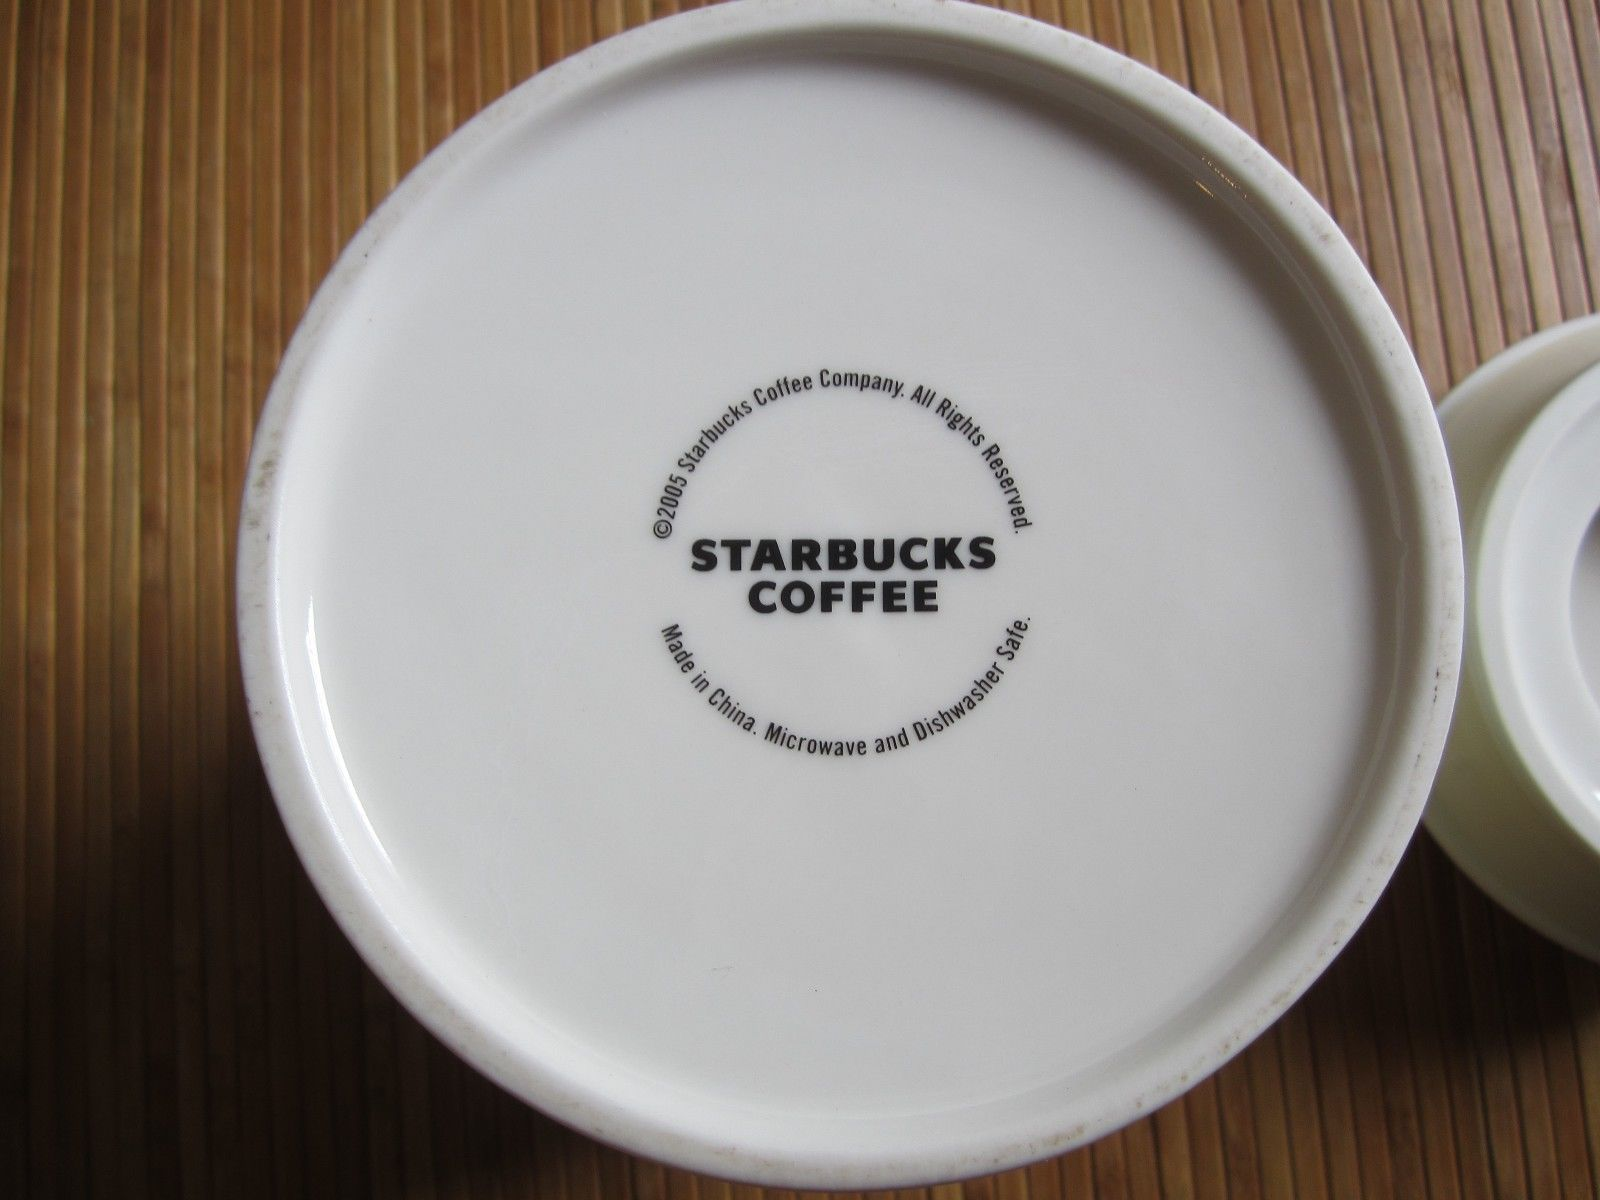 2005 Starbucks At Home Coffee Cookies Snacks Biscotti Canister Jar W/ Lid White